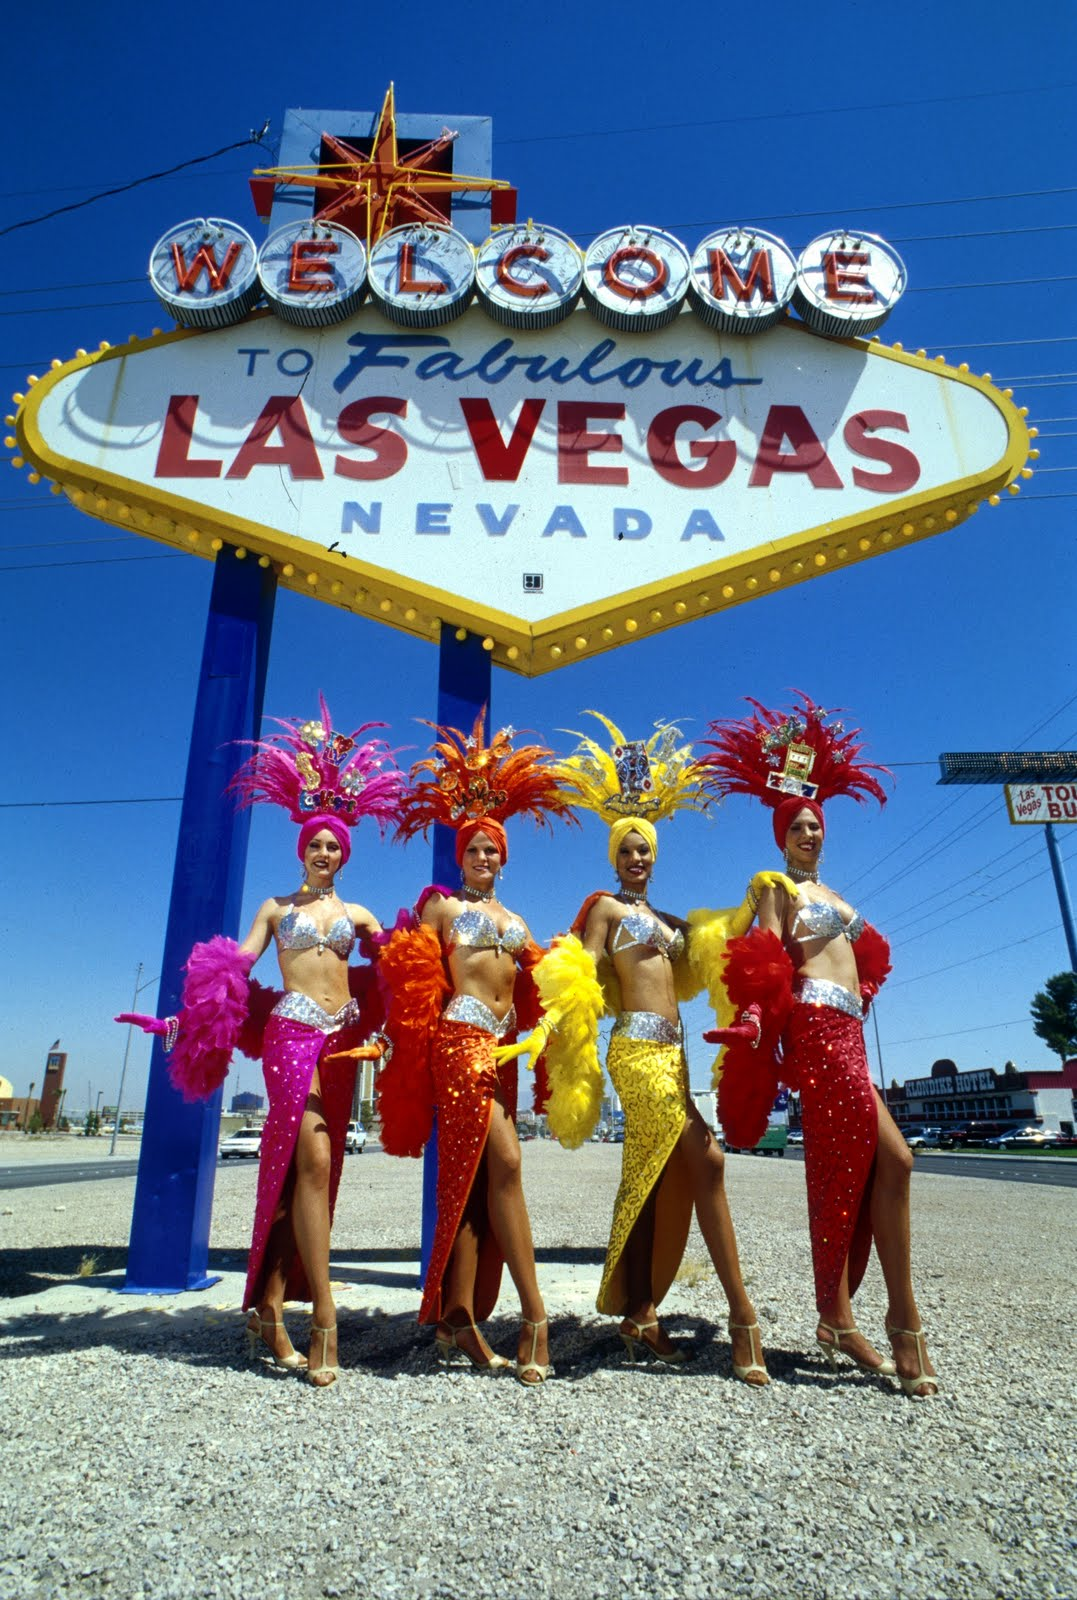 maps of dallas Las Vegas Nevada USA Tourist Guide – Nevada Tourist Attractions Map